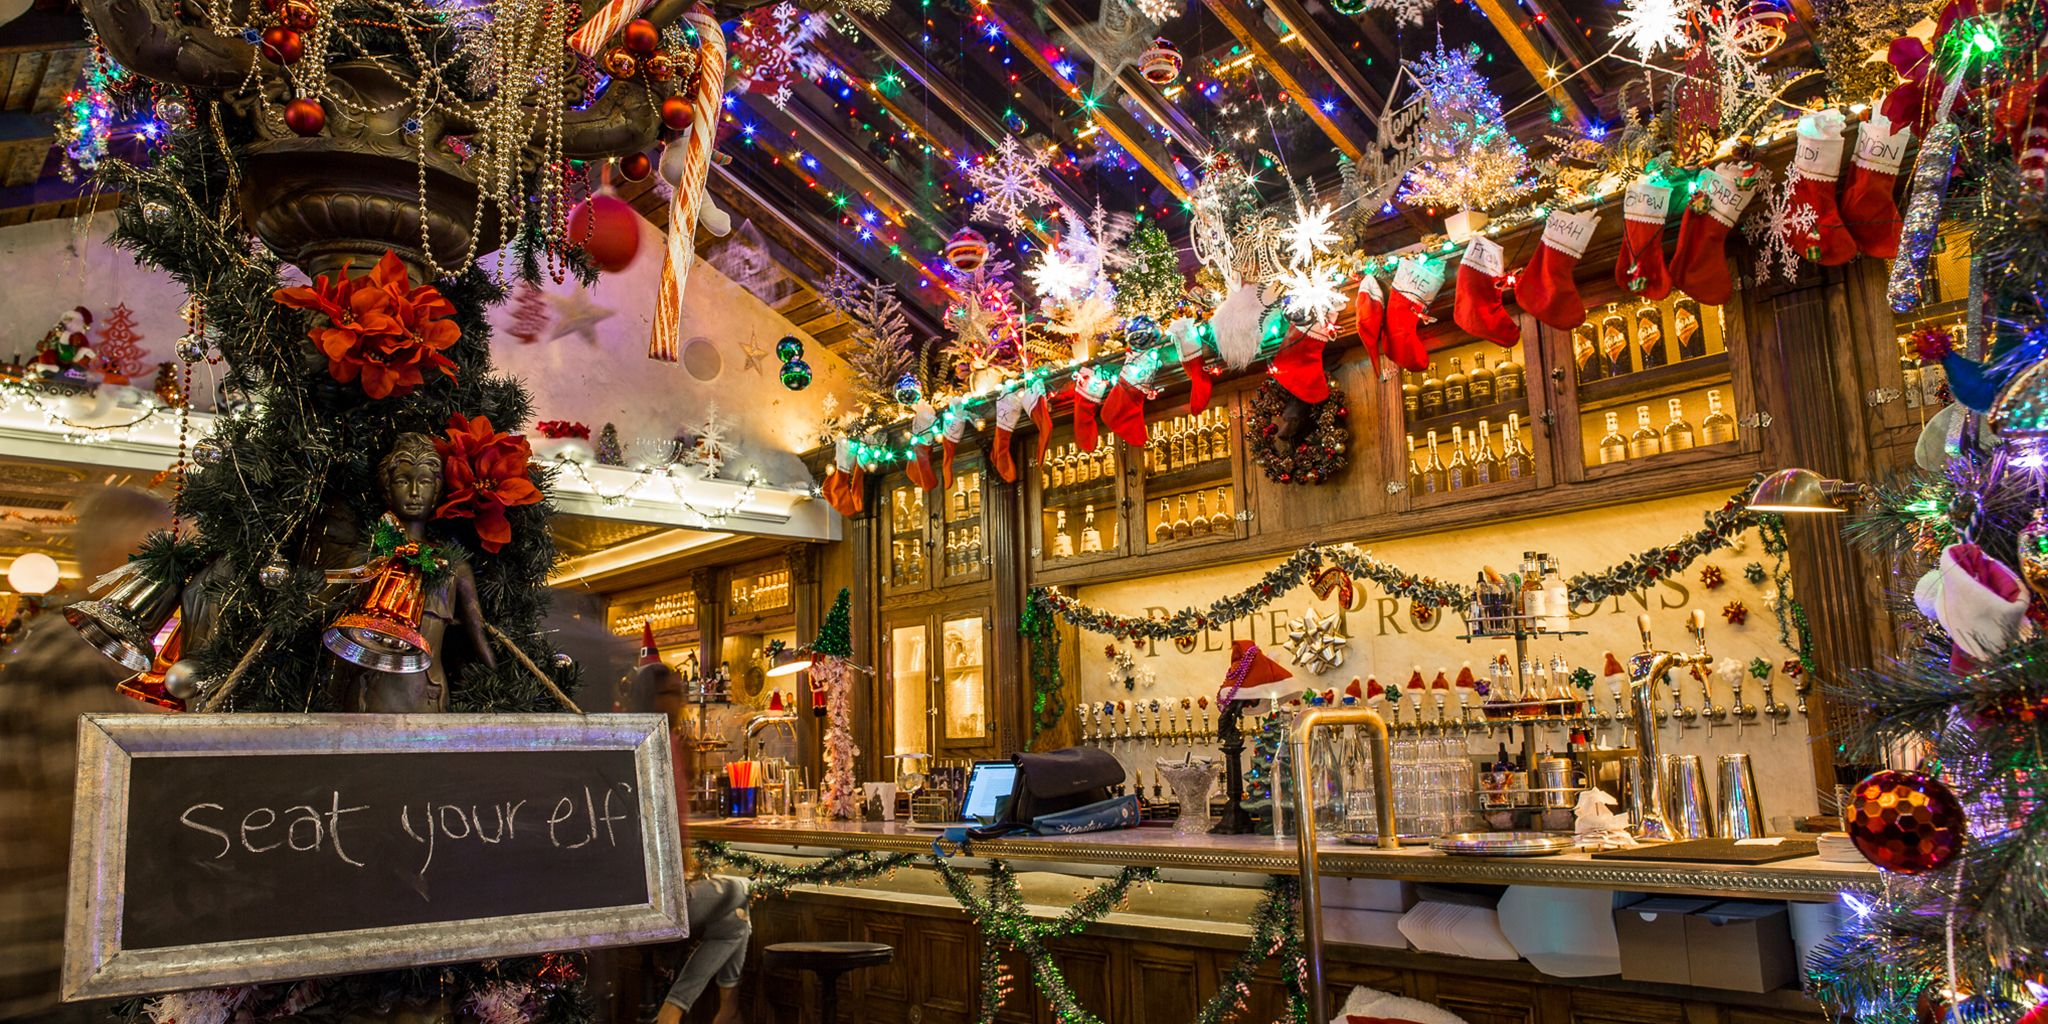 12 Best Christmas Bars in NYC - Festive Holiday-Themed Bars in New York